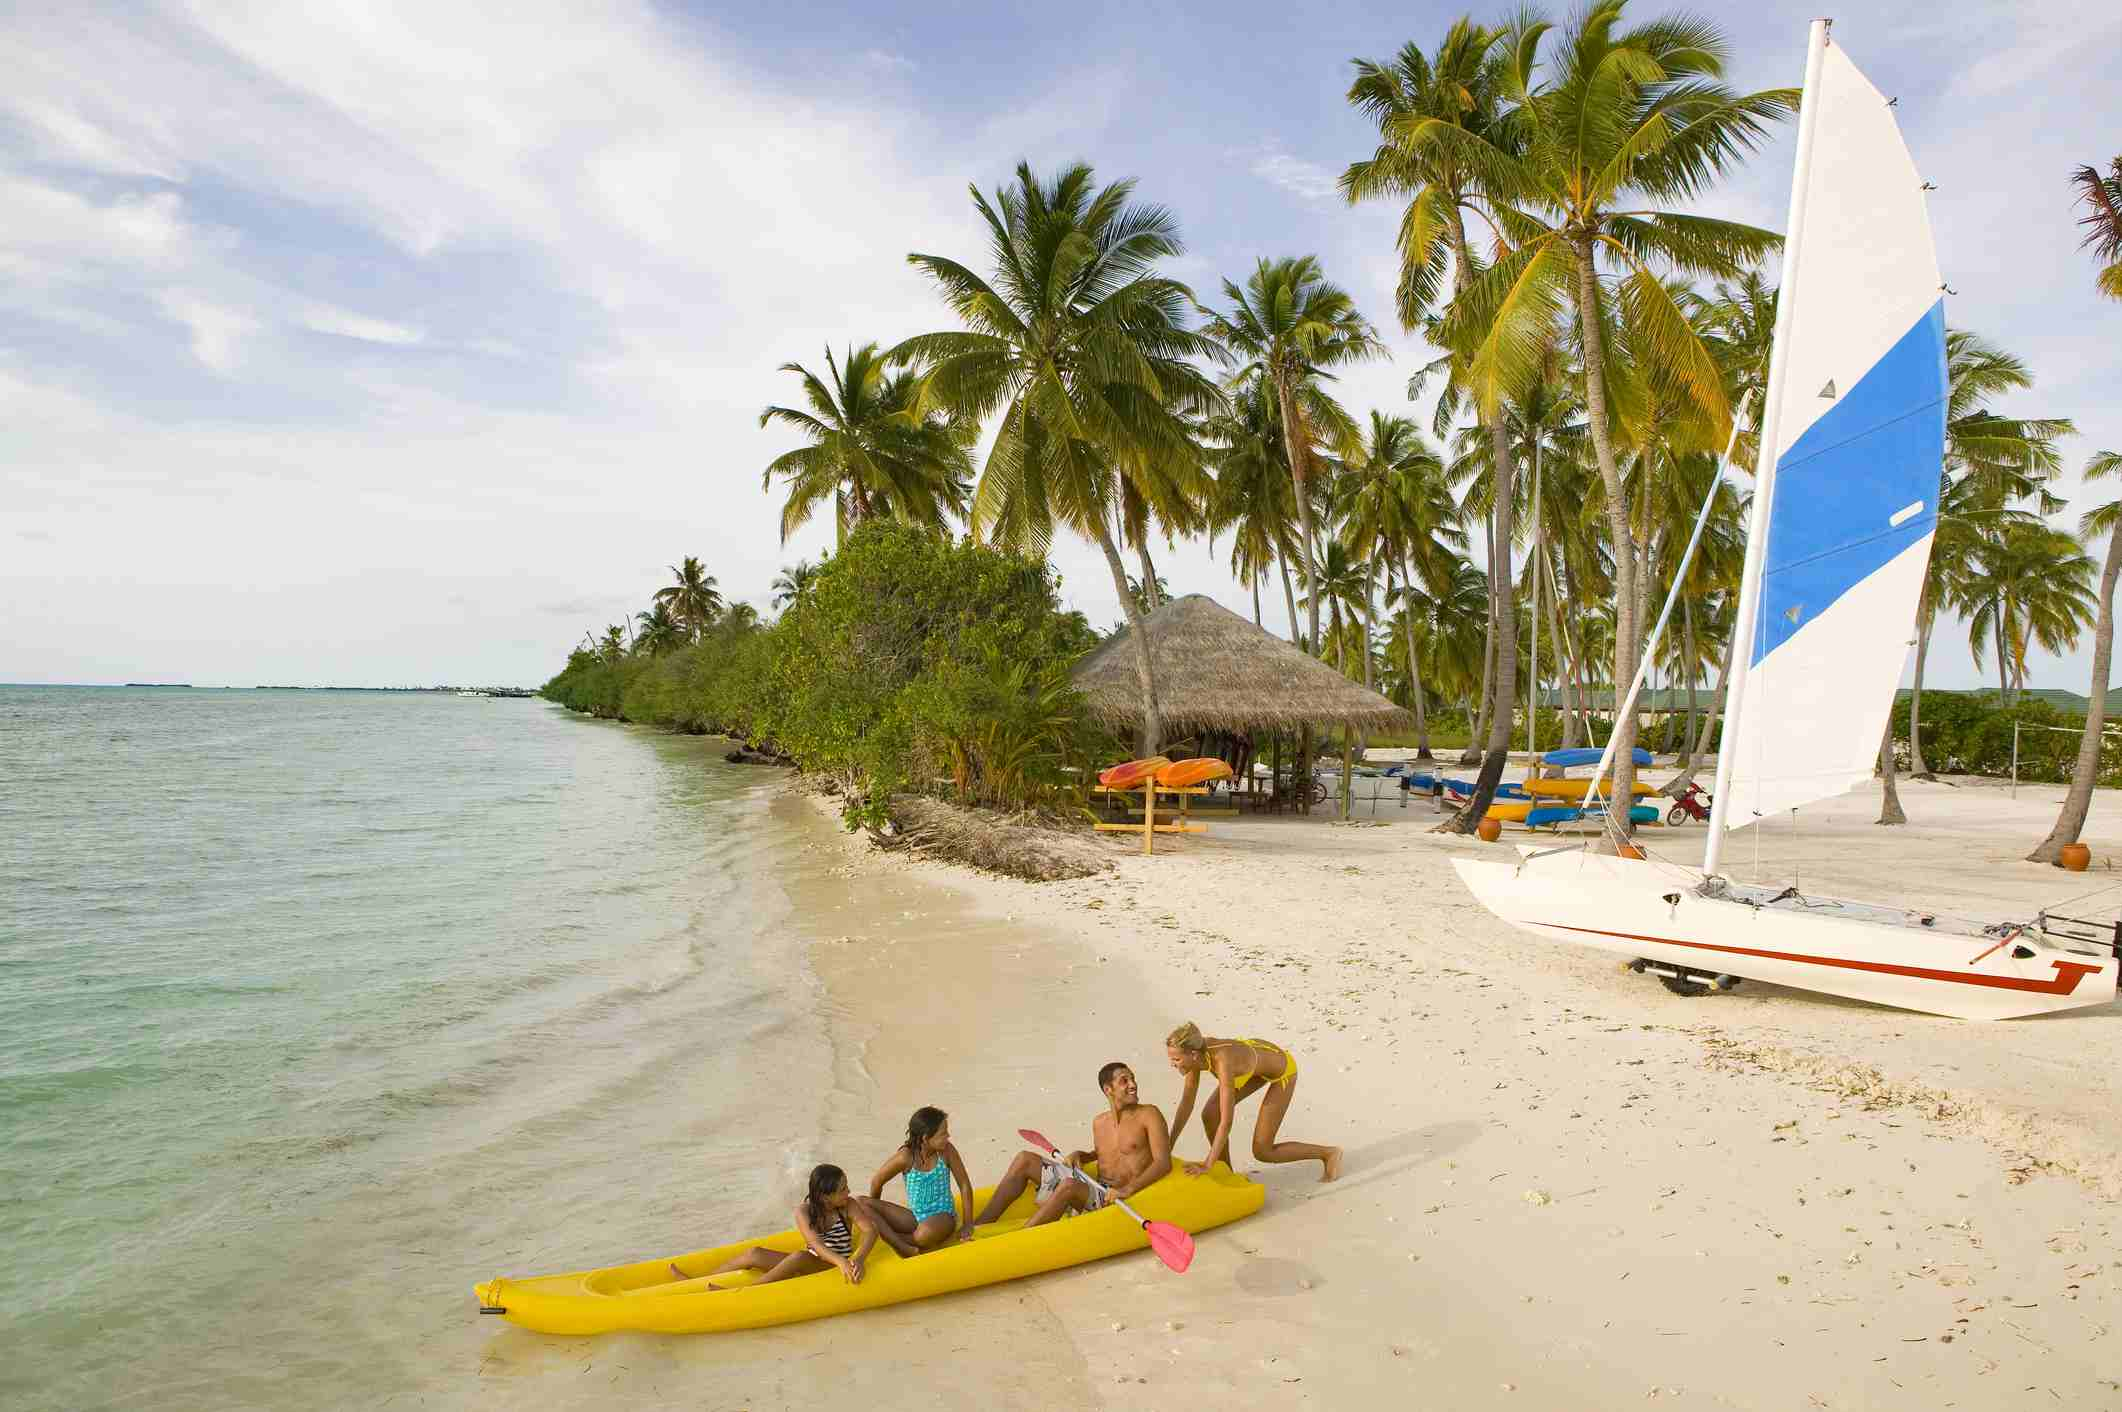 Watersports in the Maldives.